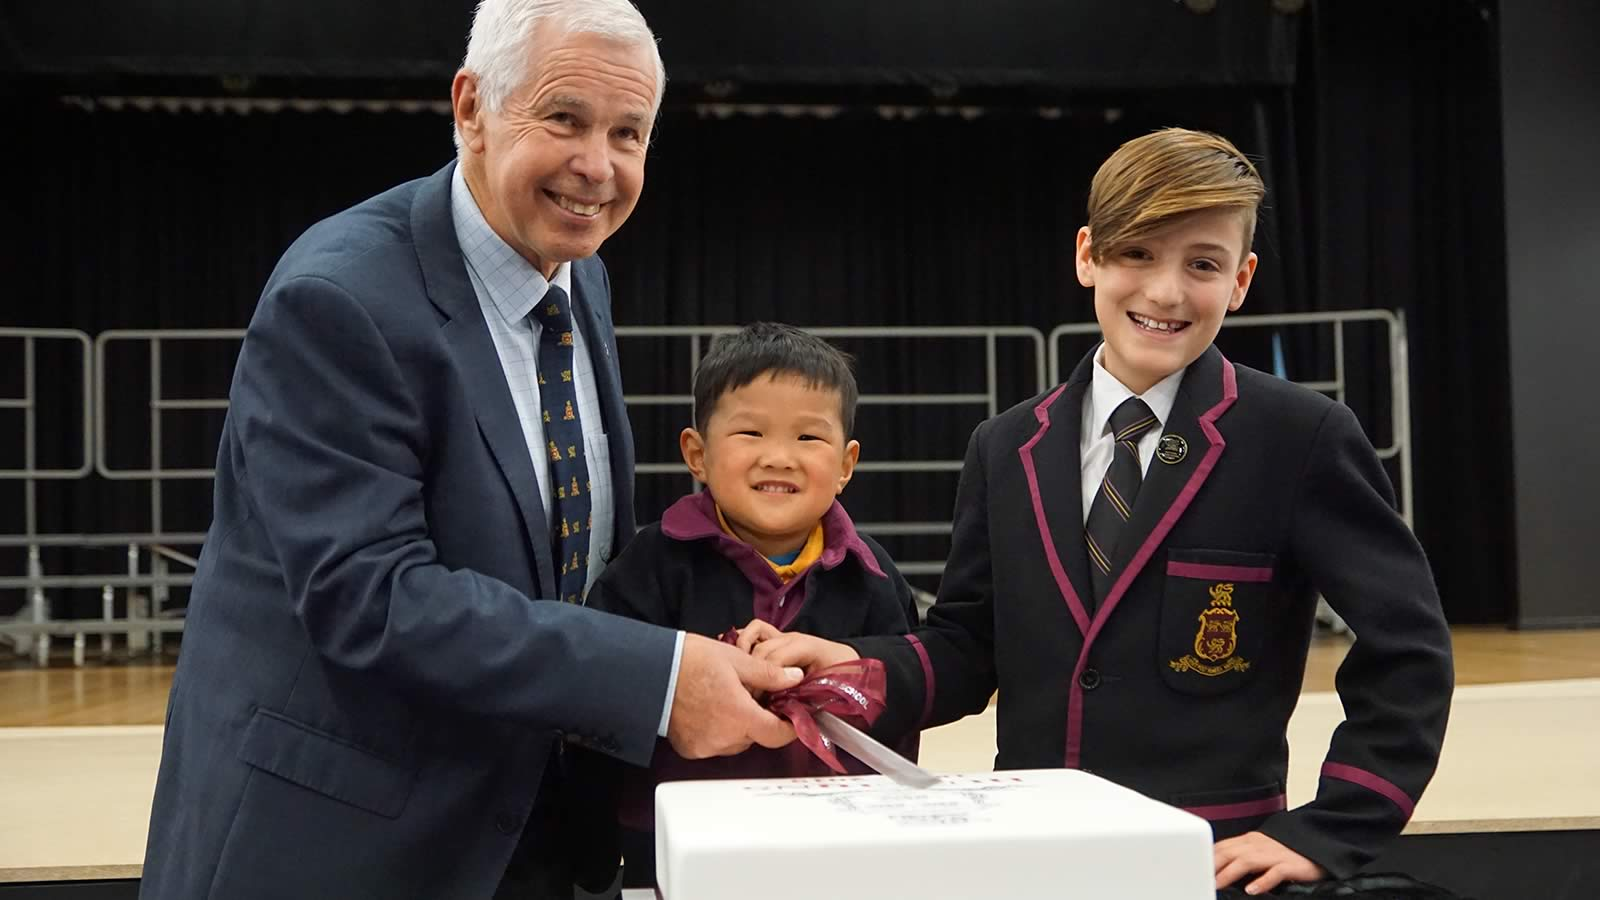 President of the Hutchins School Old Boys' Association Mr Barrie Irons, Elliott Lee (Pre-Kindergarten) and Thomas Birkett (Year 6) cutting the Anniversary Cake.